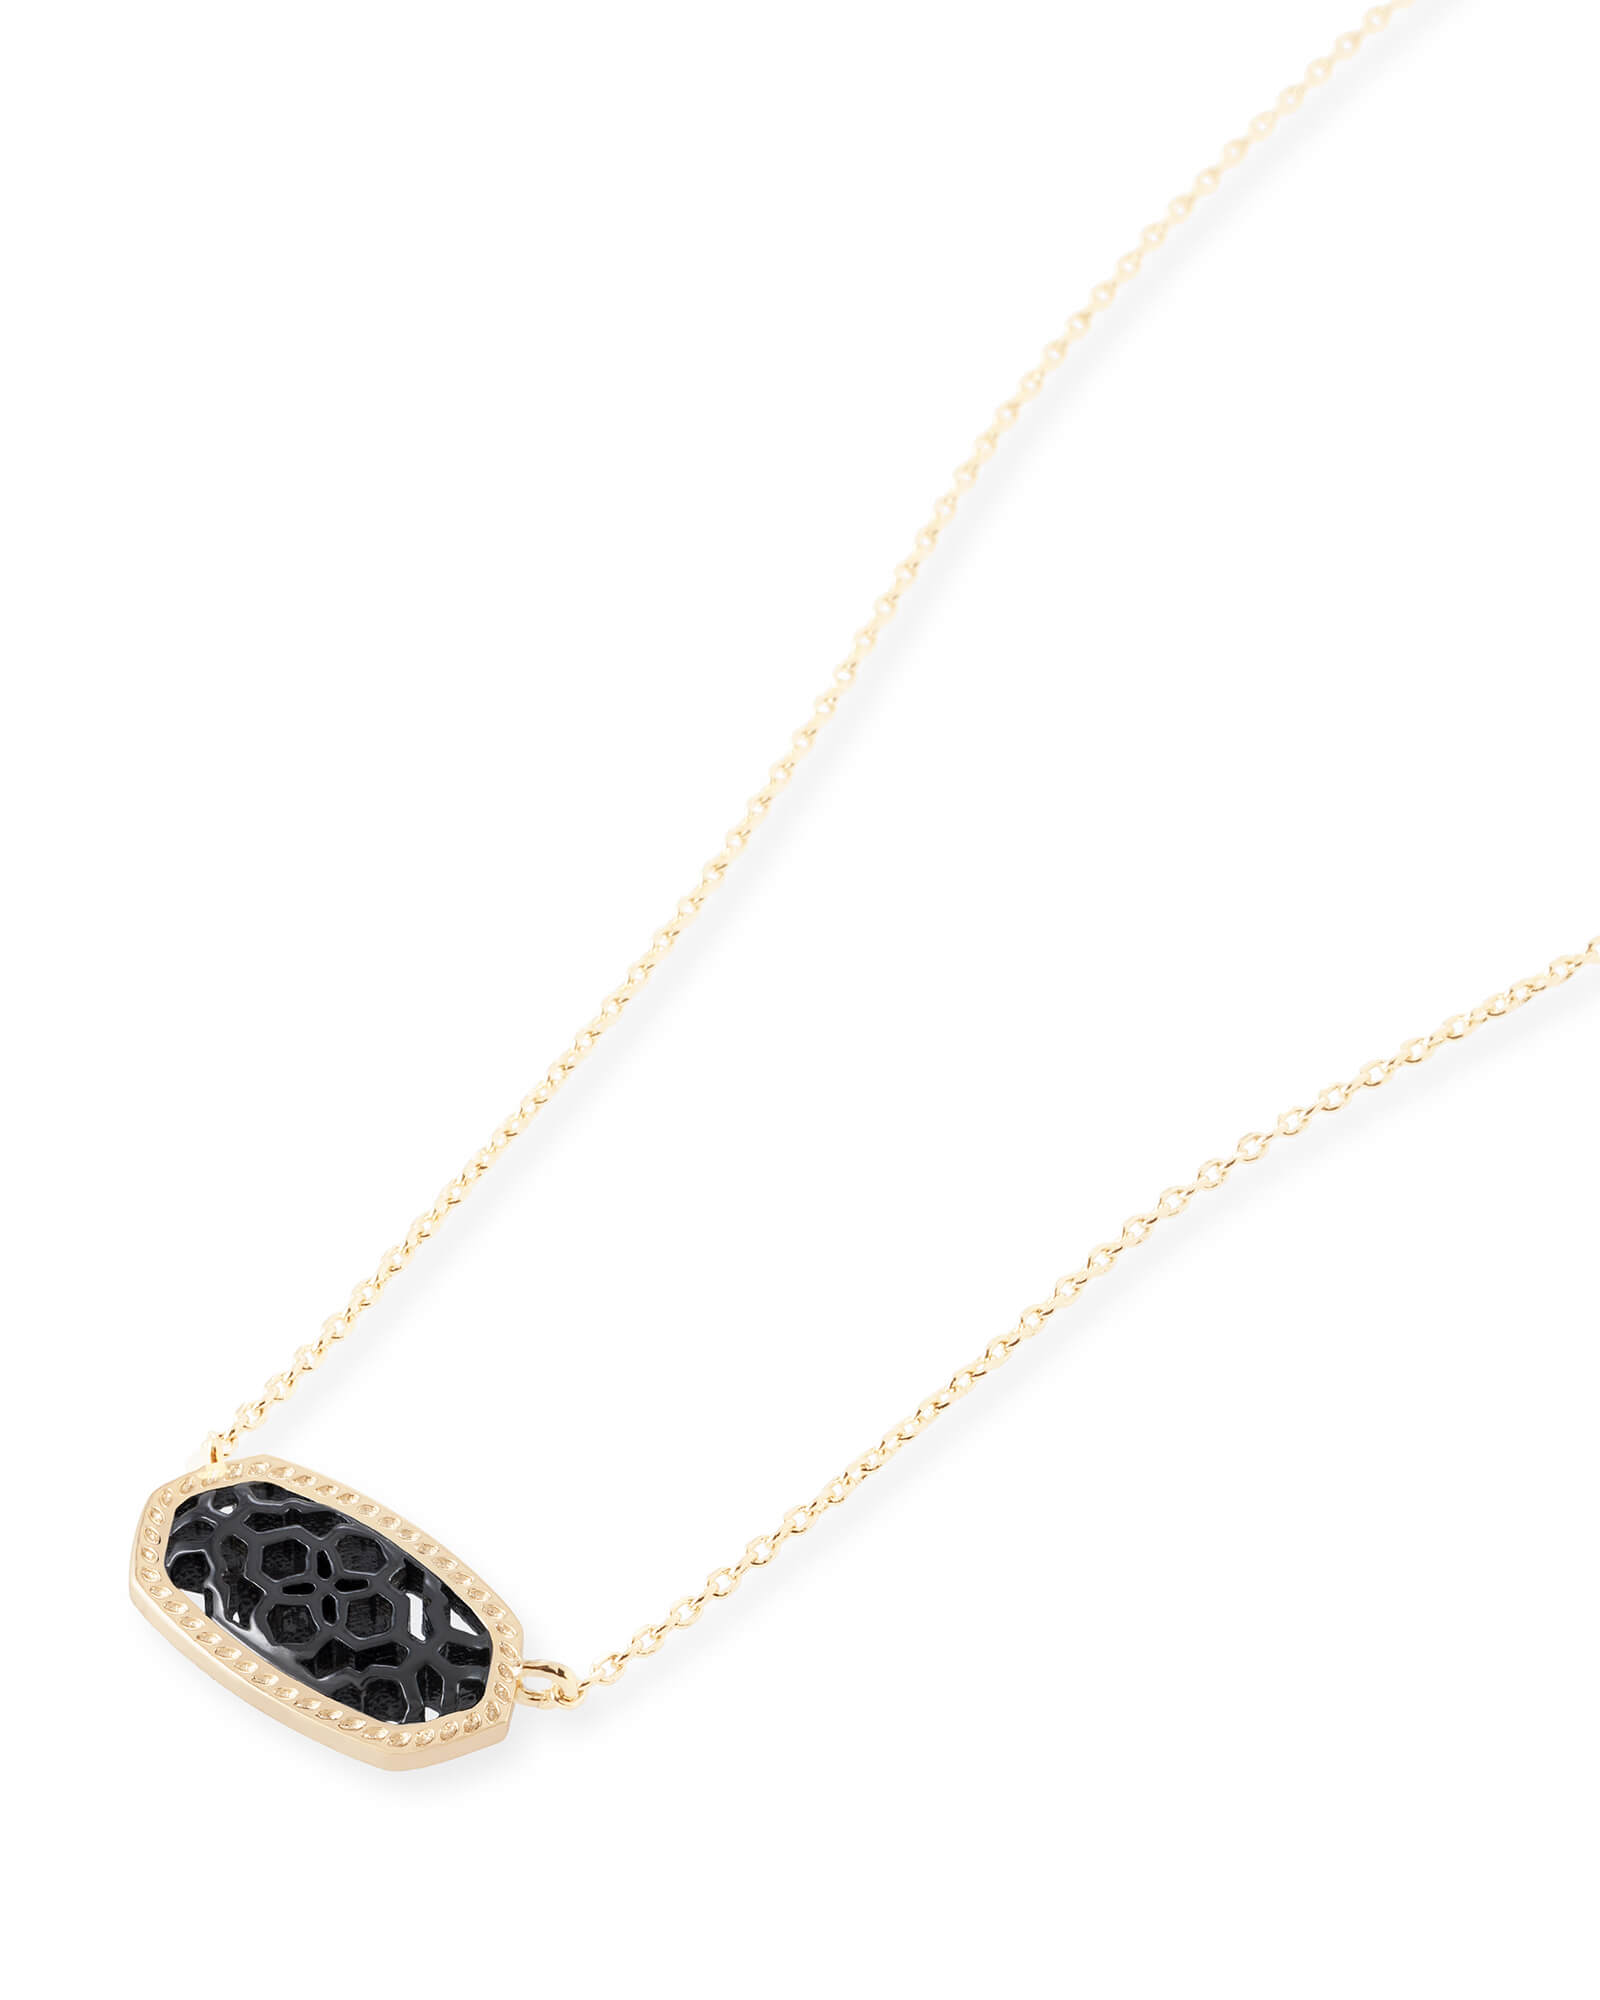 Elisa Gold Pendant Necklace in Gunmetal Filigree